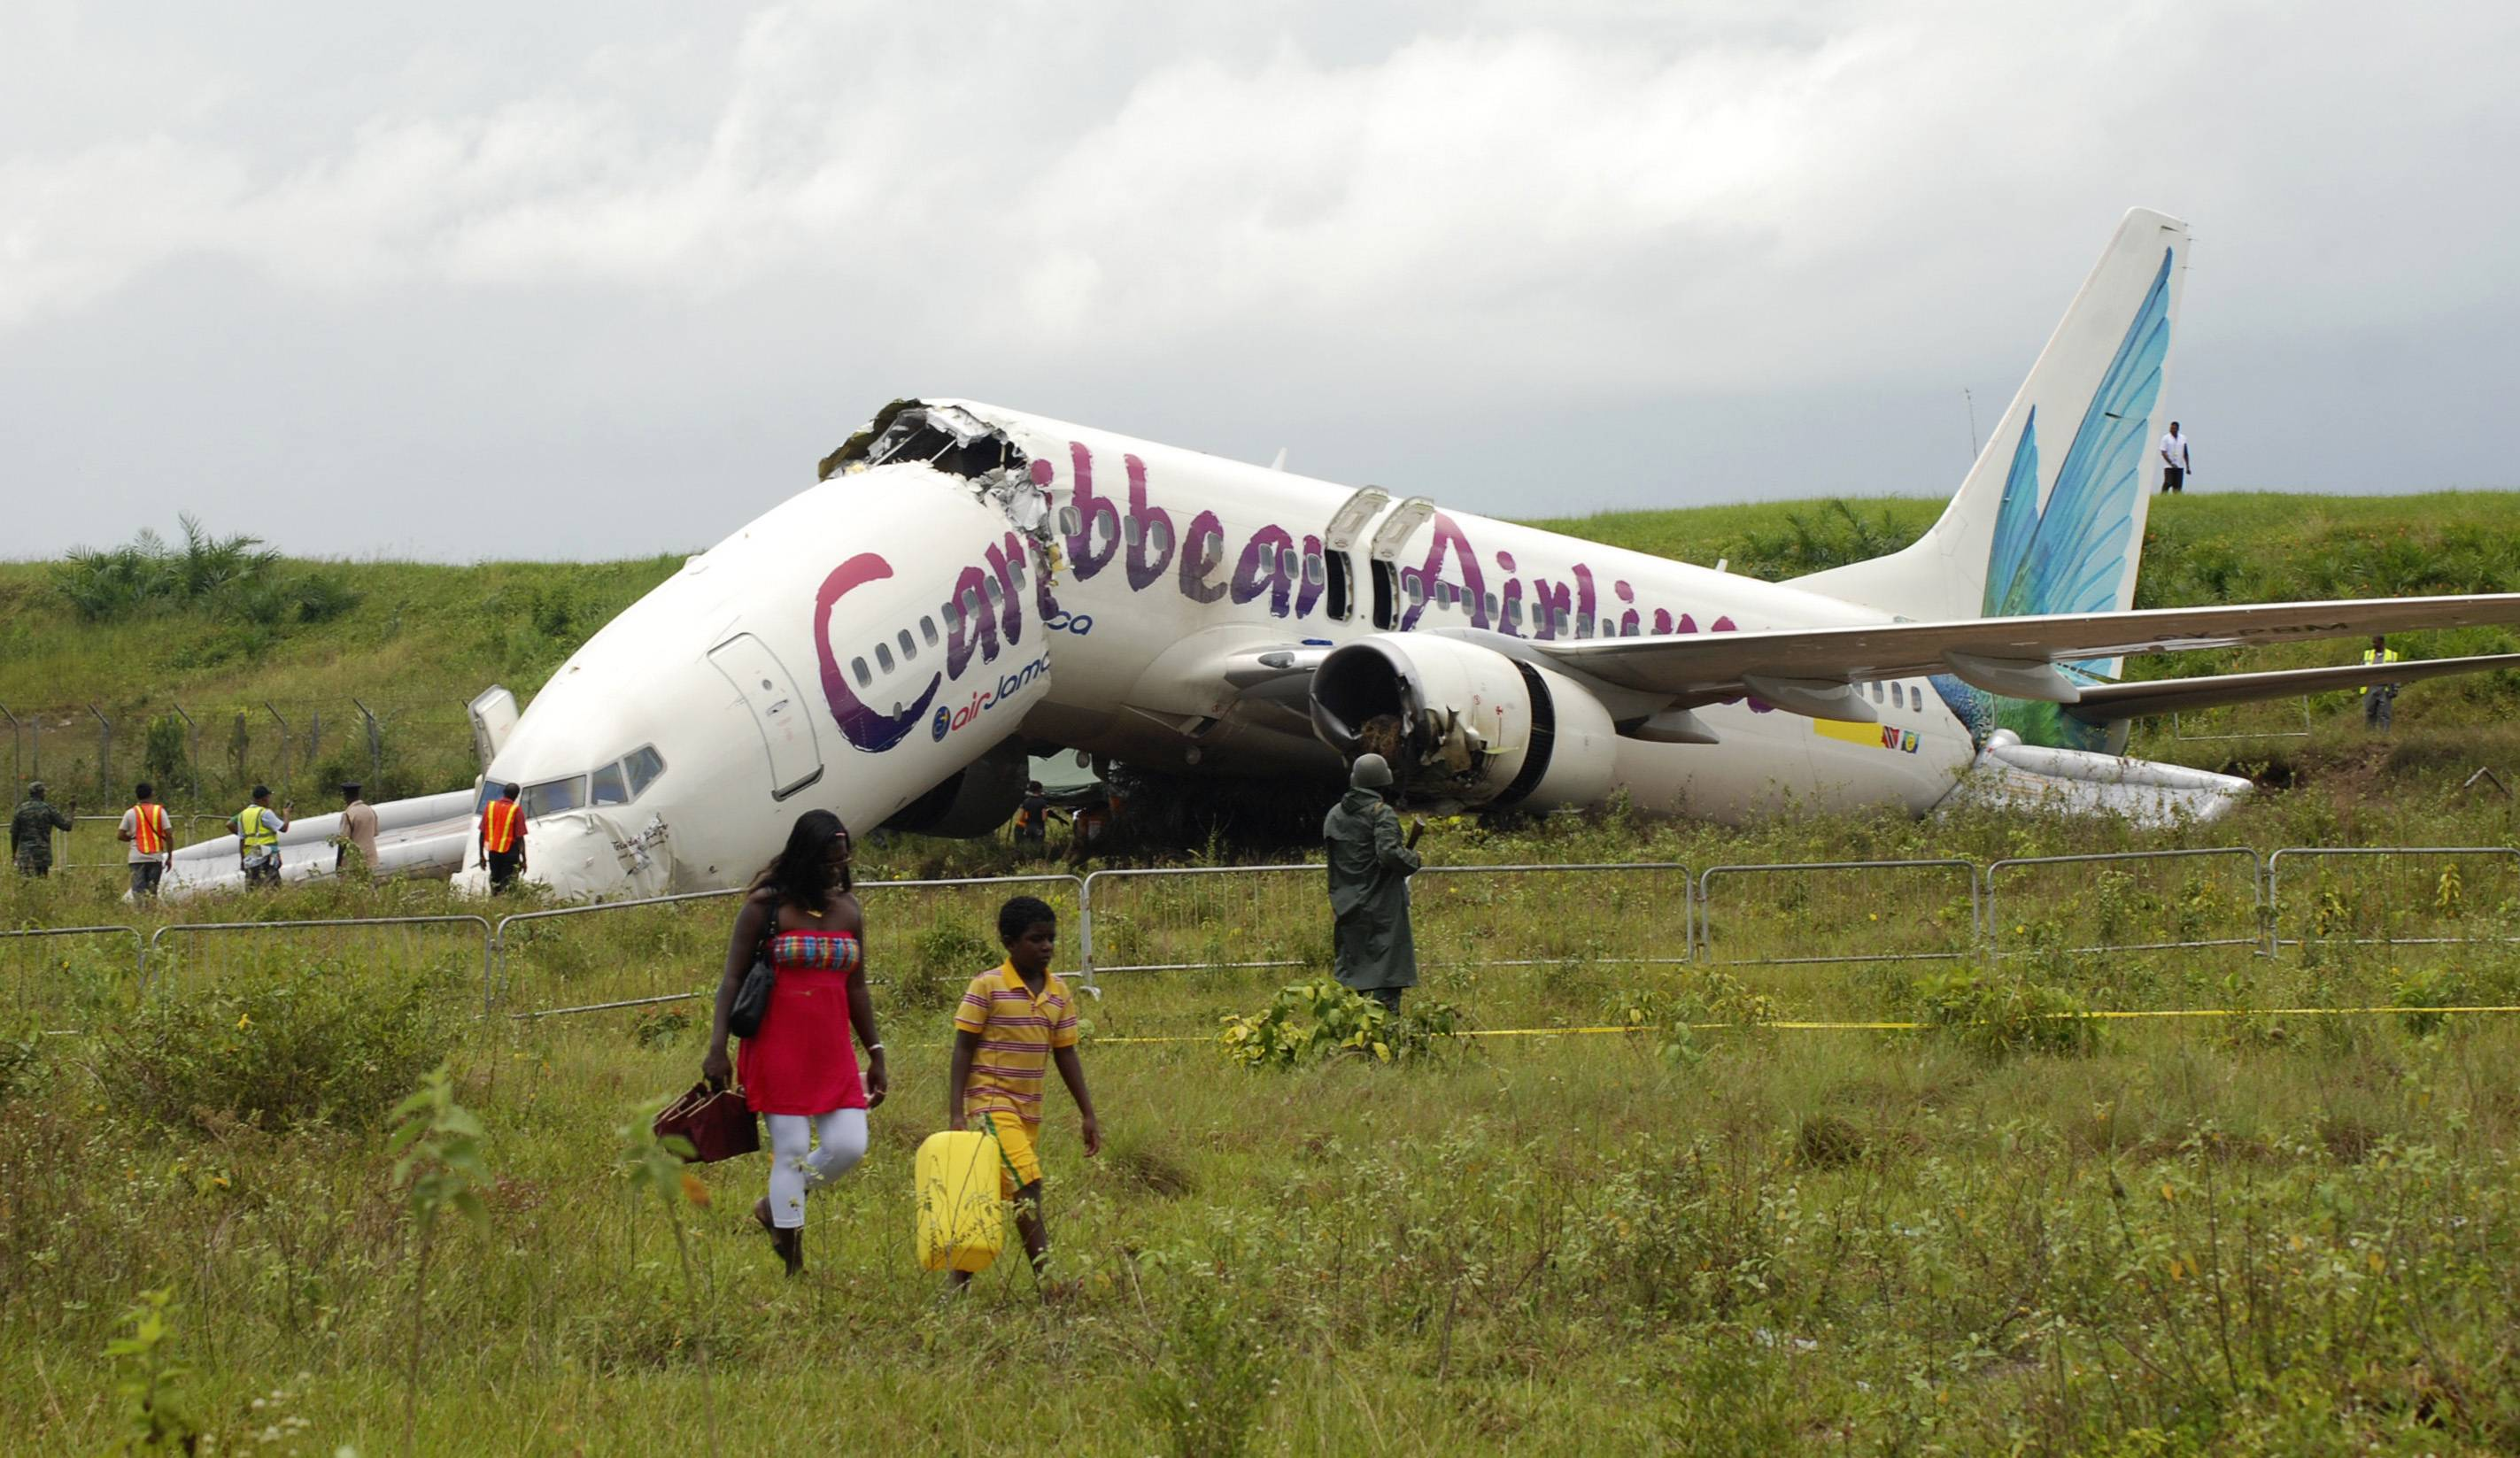 The broken fuselage of a Caribbean Airlines' Boeing 737-800 is seen after it crashed Saturday at the end of the runway at Cheddi Jagan International Airport in Timehri, Guyana. The Caribbean Airlines flight 523 from New York touched down on the rainy runway, slid through a chain-link fence and broke apart just short of a ravine but there were no immediate reports of death among the 163 people aboard, despite several dozen of injuries.